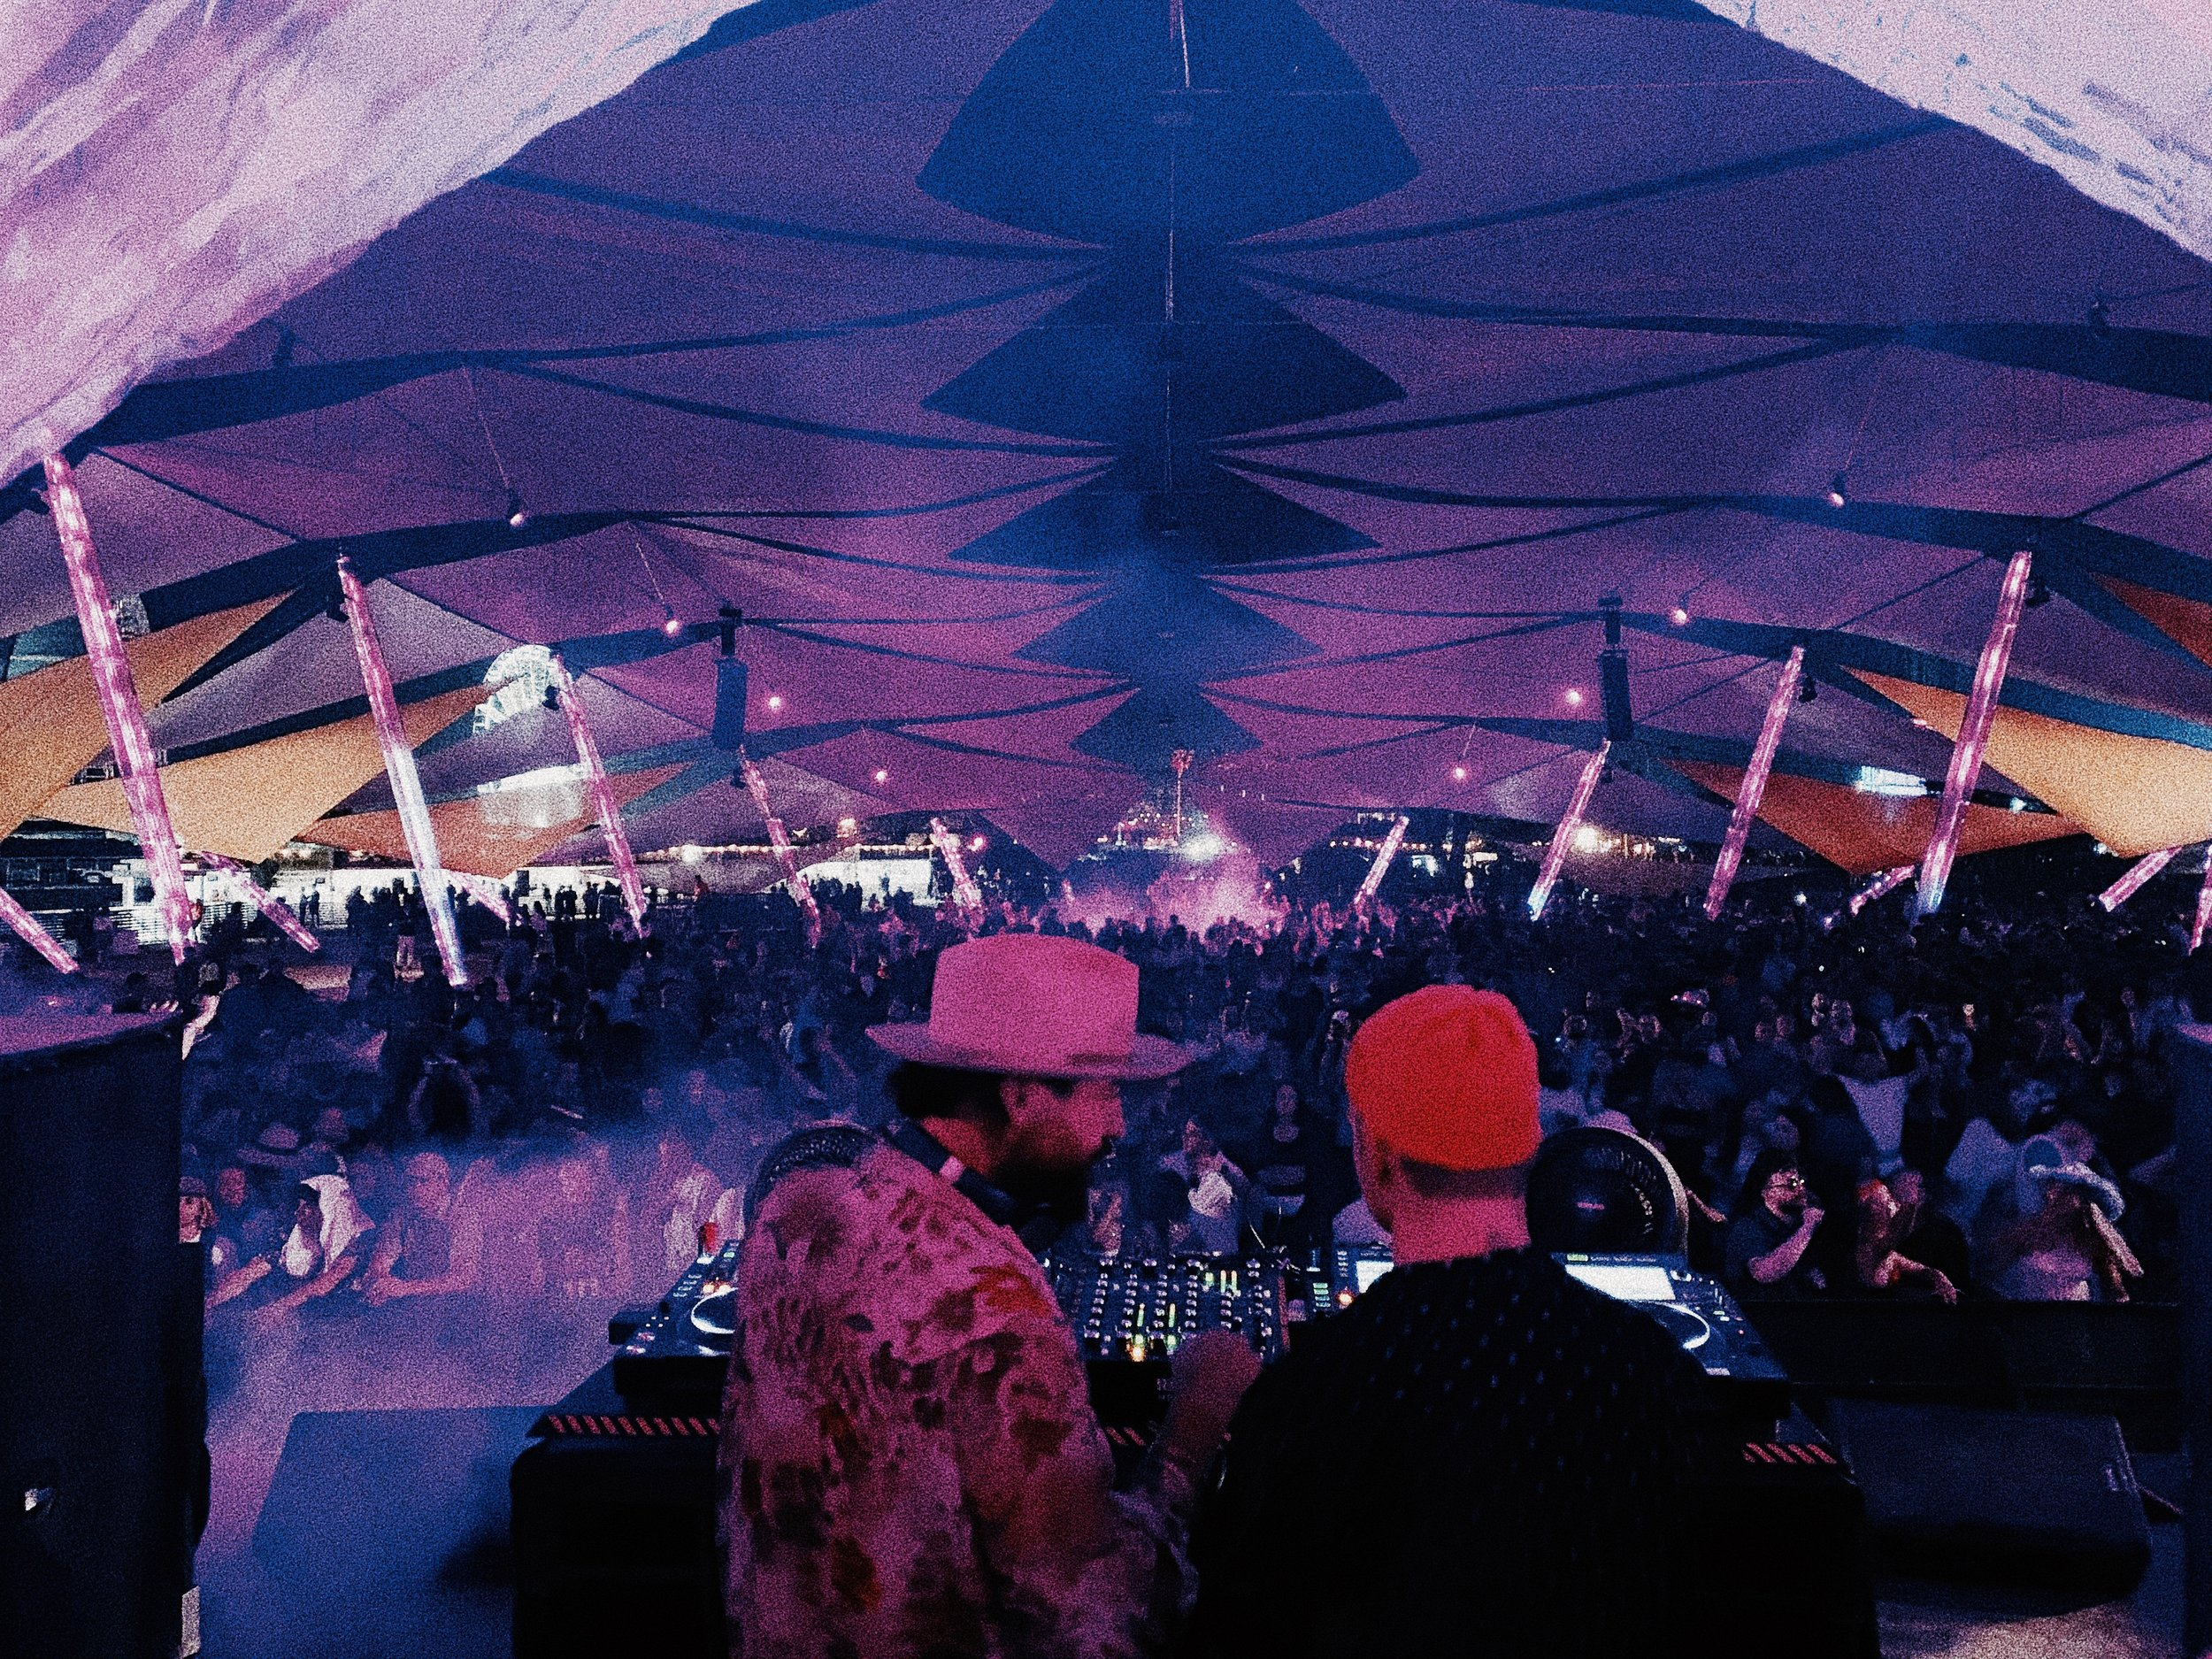 Showtime, this picture is from my recent show at Coachella playing B2B with my brother RY X, always an amazing festival to play and especially with RY.